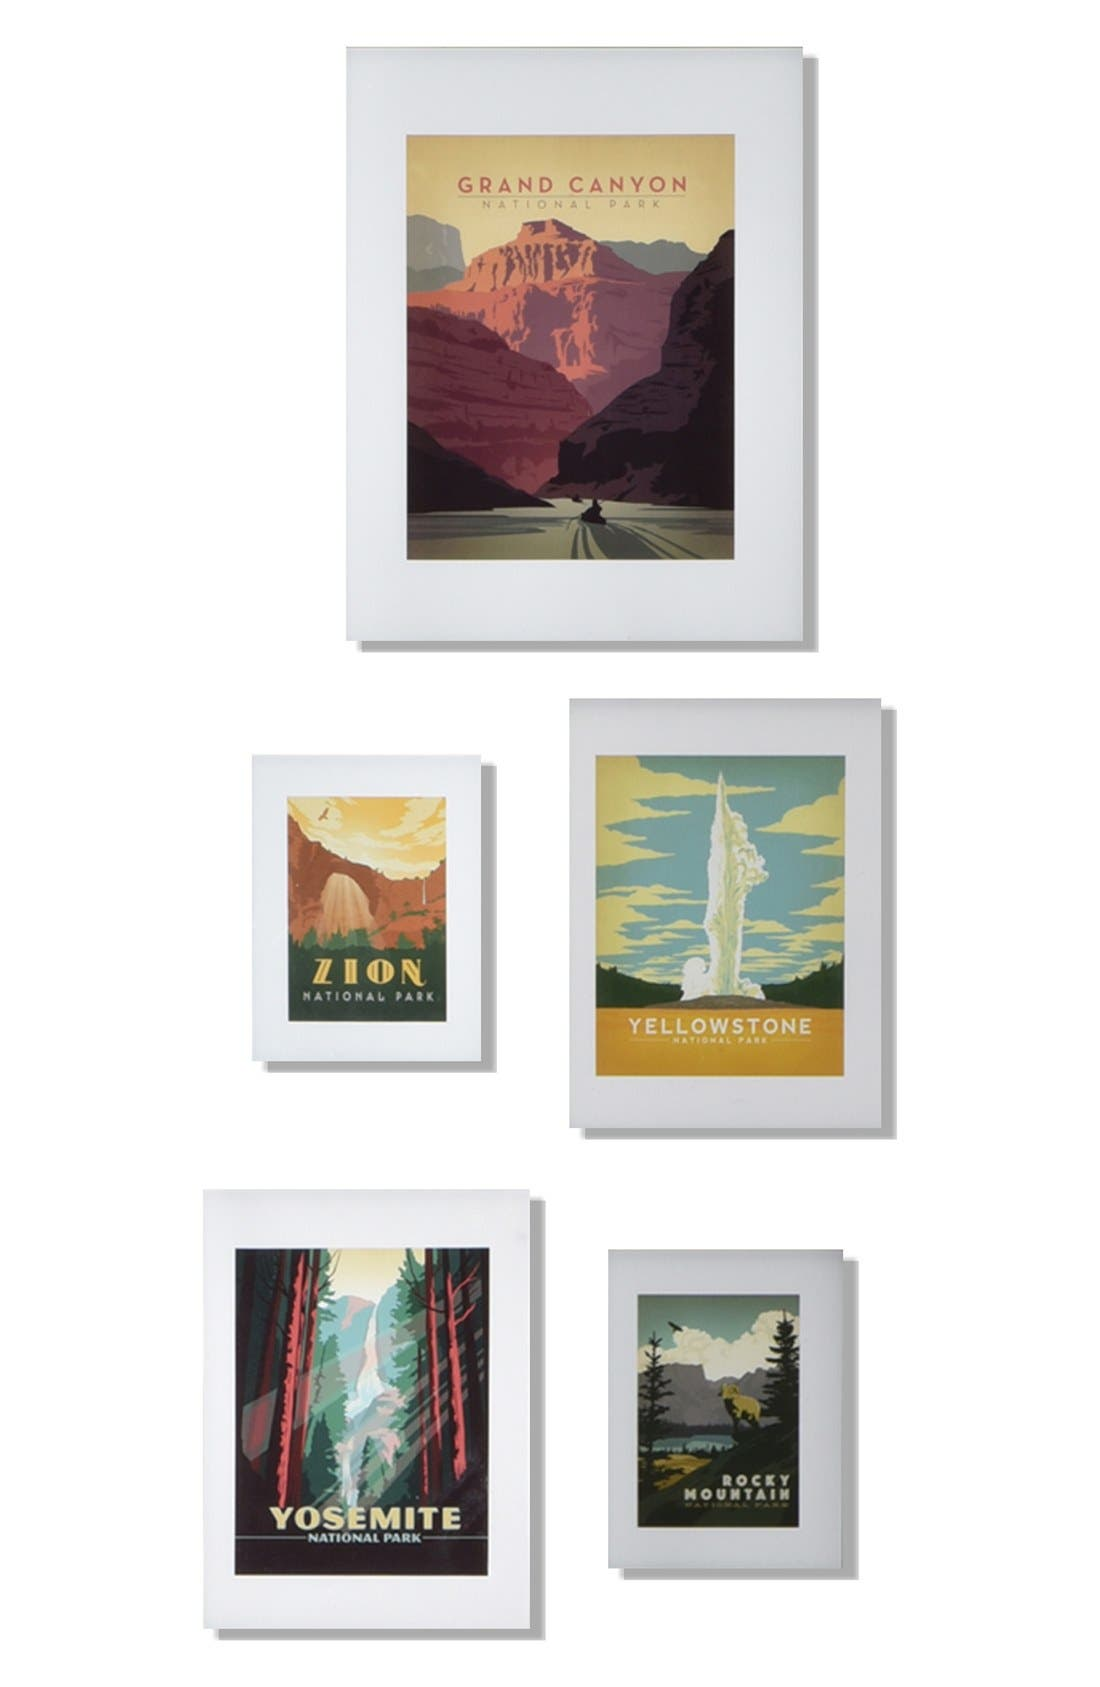 DENY Designs National Parks Five-Piece Gallery Wall Art Print Set